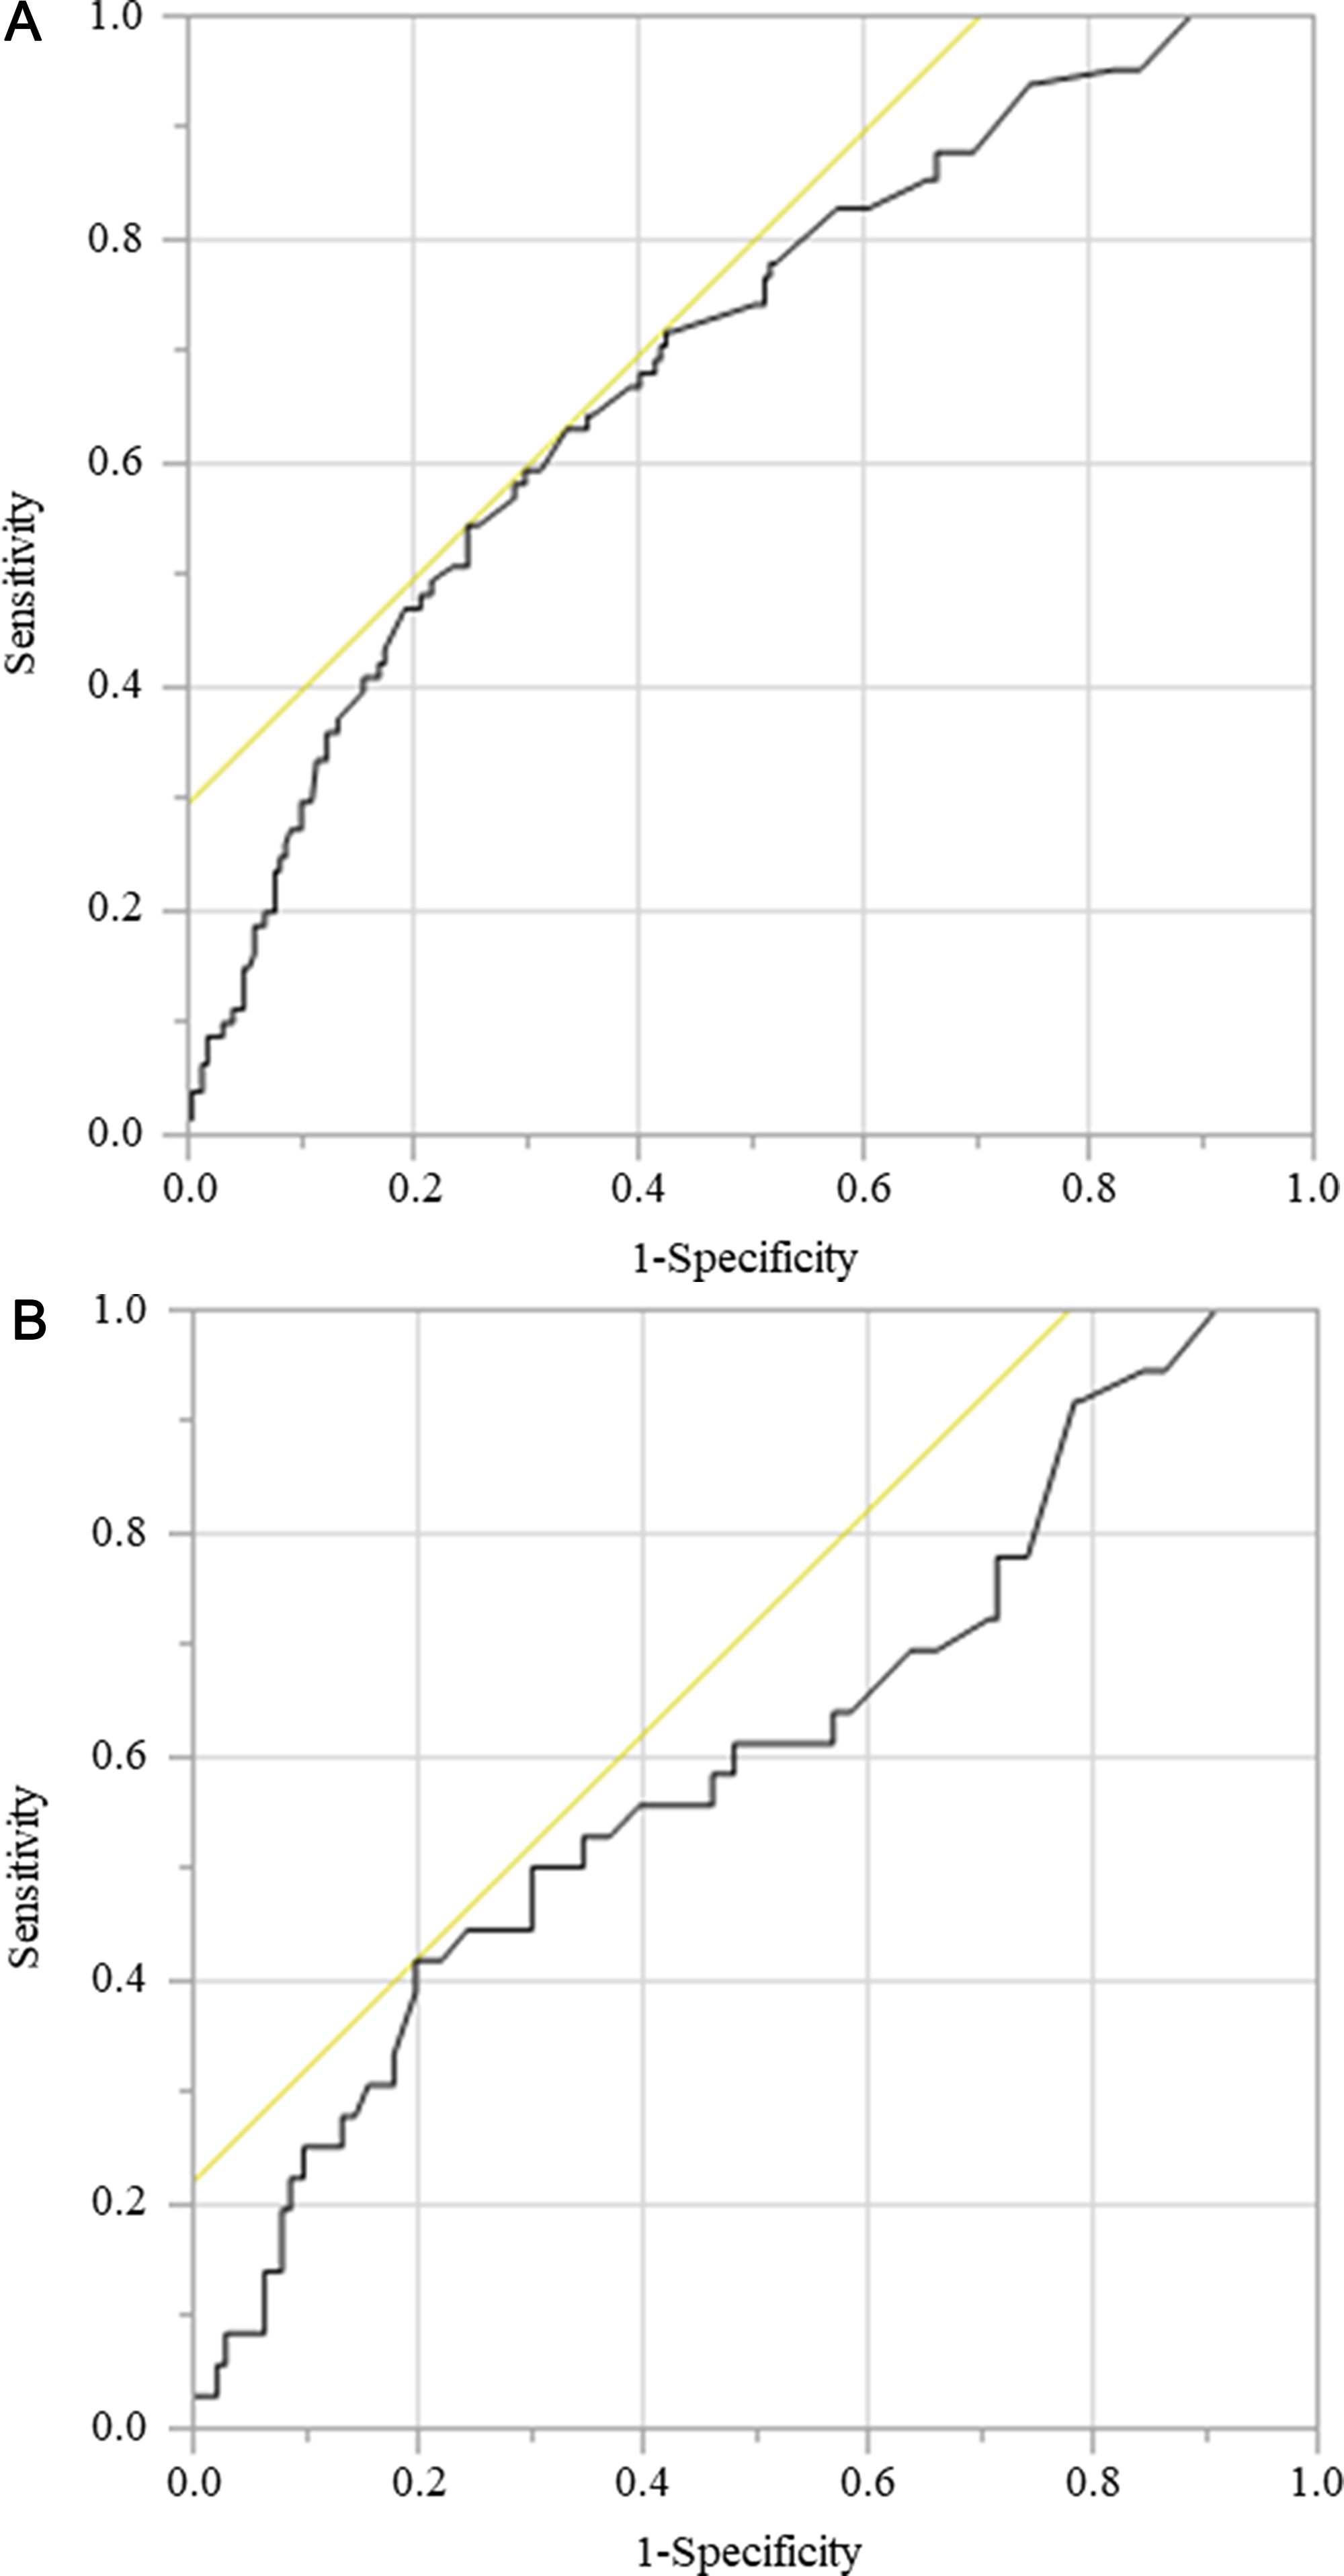 ROC for GNRI as a predictive factor for postoperative survival was plotted to verify the optimum cutoff value of GNRI.